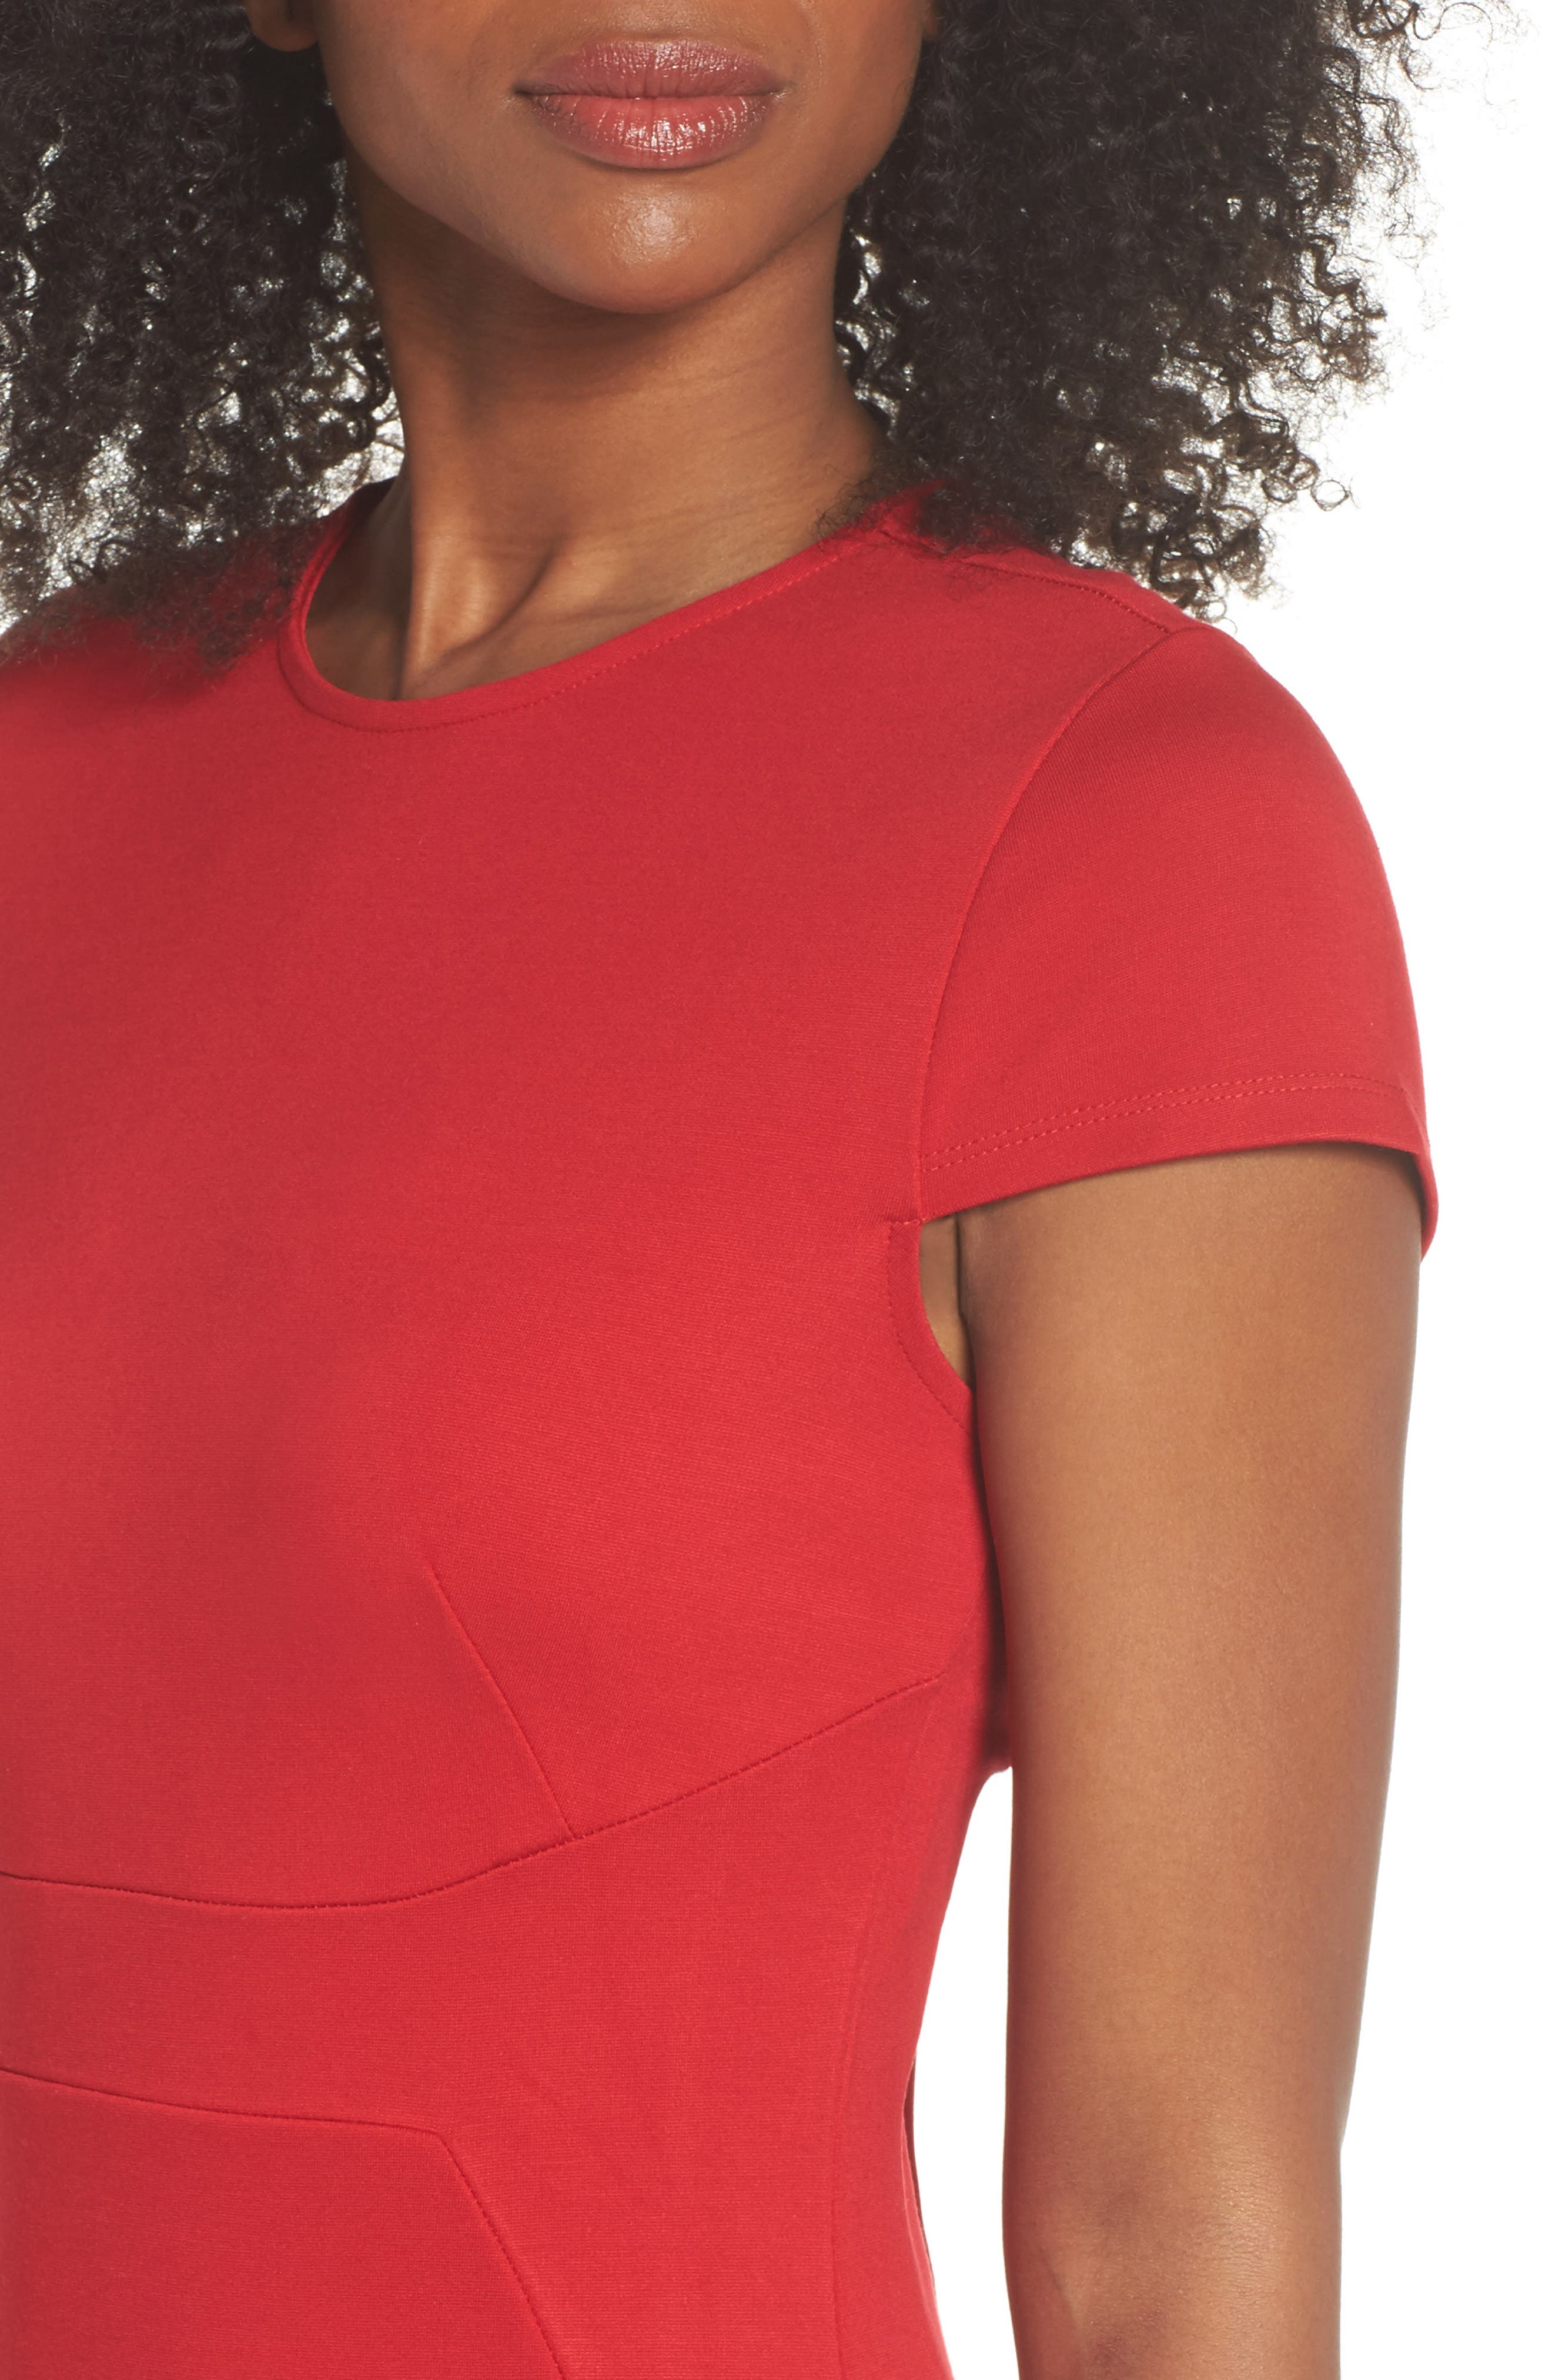 Austin Sheath Dress,                             Alternate thumbnail 4, color,                             Tango Red